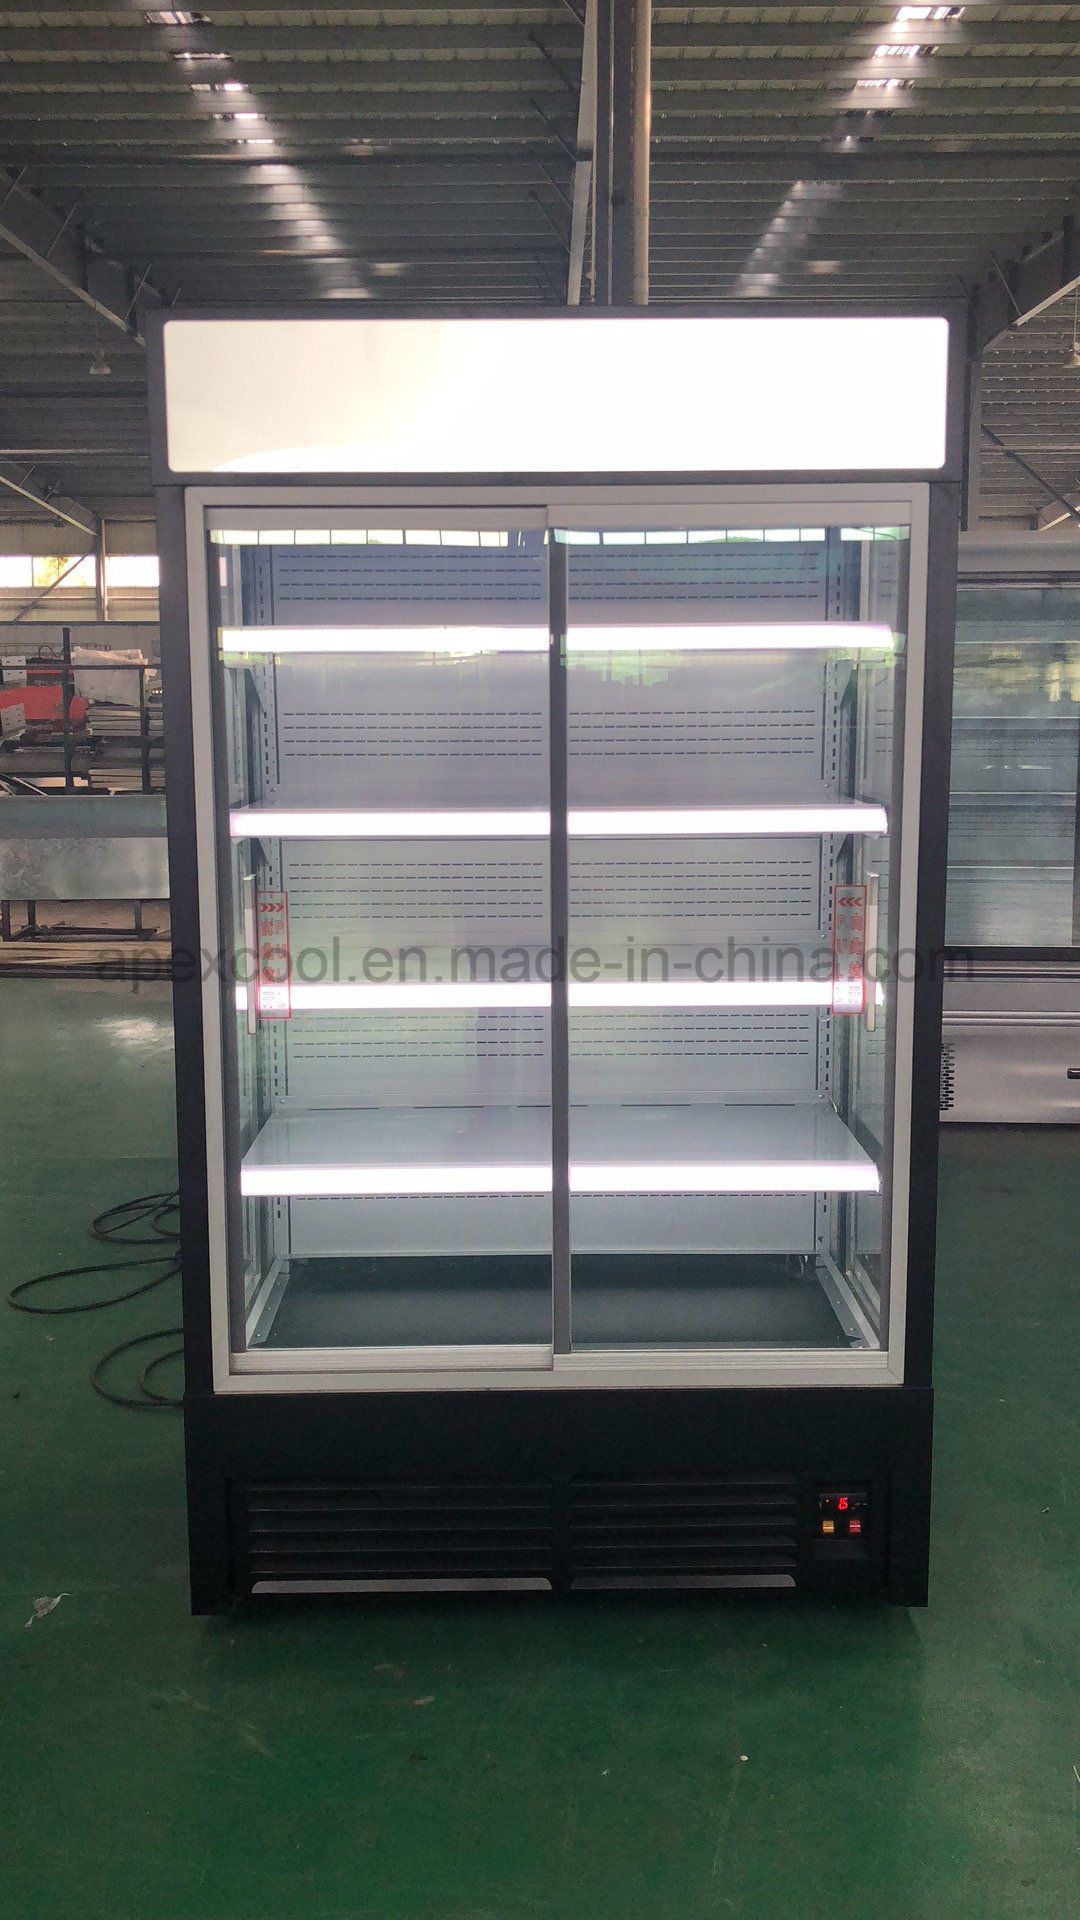 China Commercial Supermarket Glass Door Display Refrigerator Open